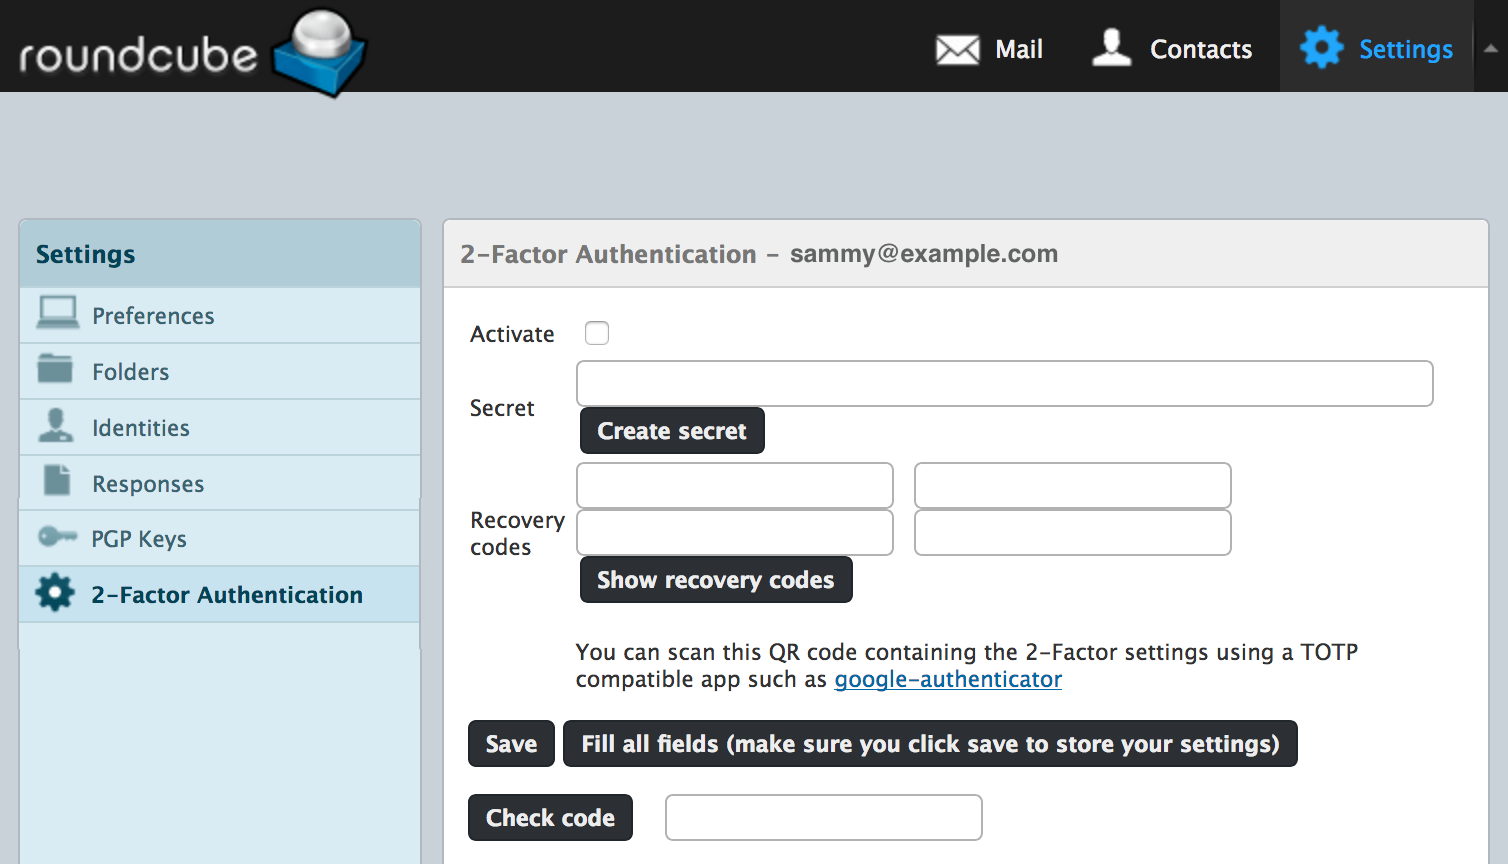 Roundcube 2-Factor Authentication settings page